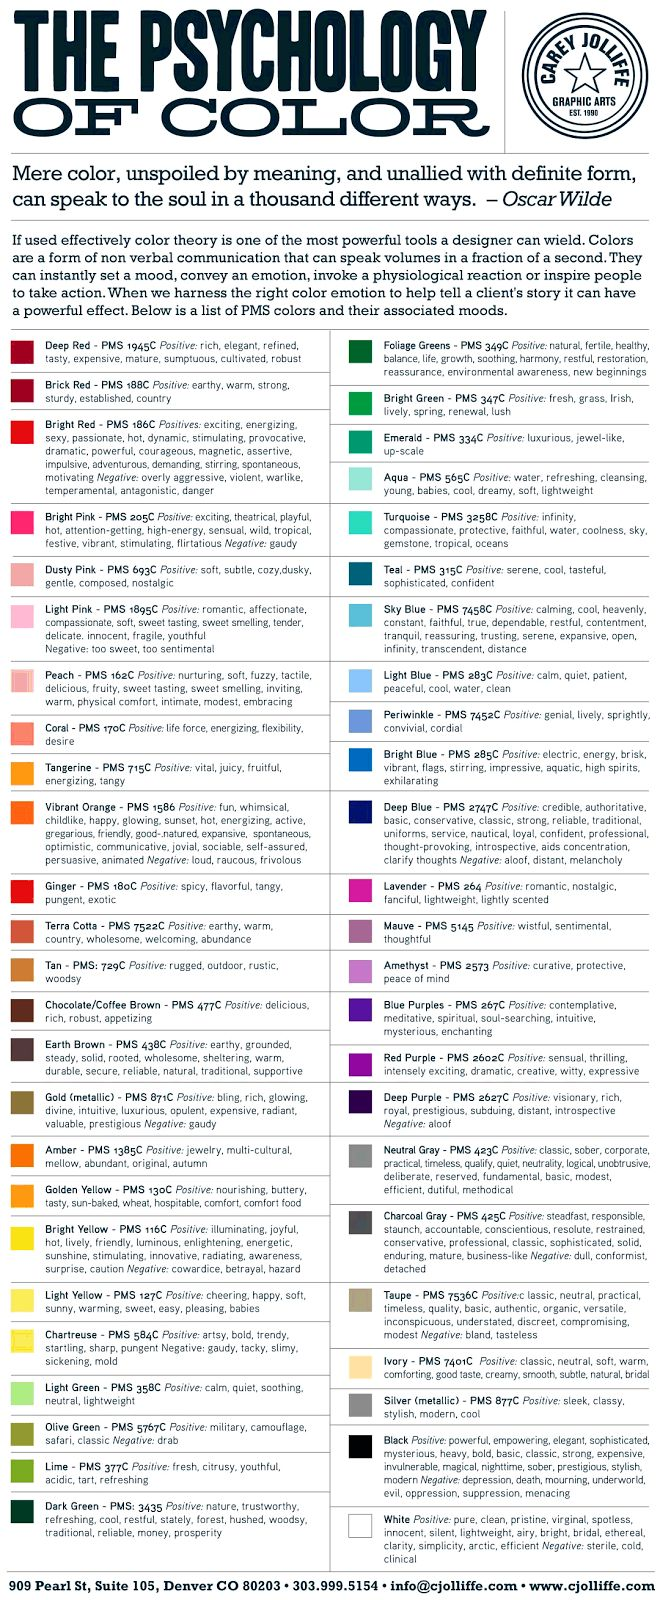 """Back in 1686, Richard Waller """"Table of Physiological Colors Both Mixt and Simple"""" offered a handy table for cross-referencing colors..."""